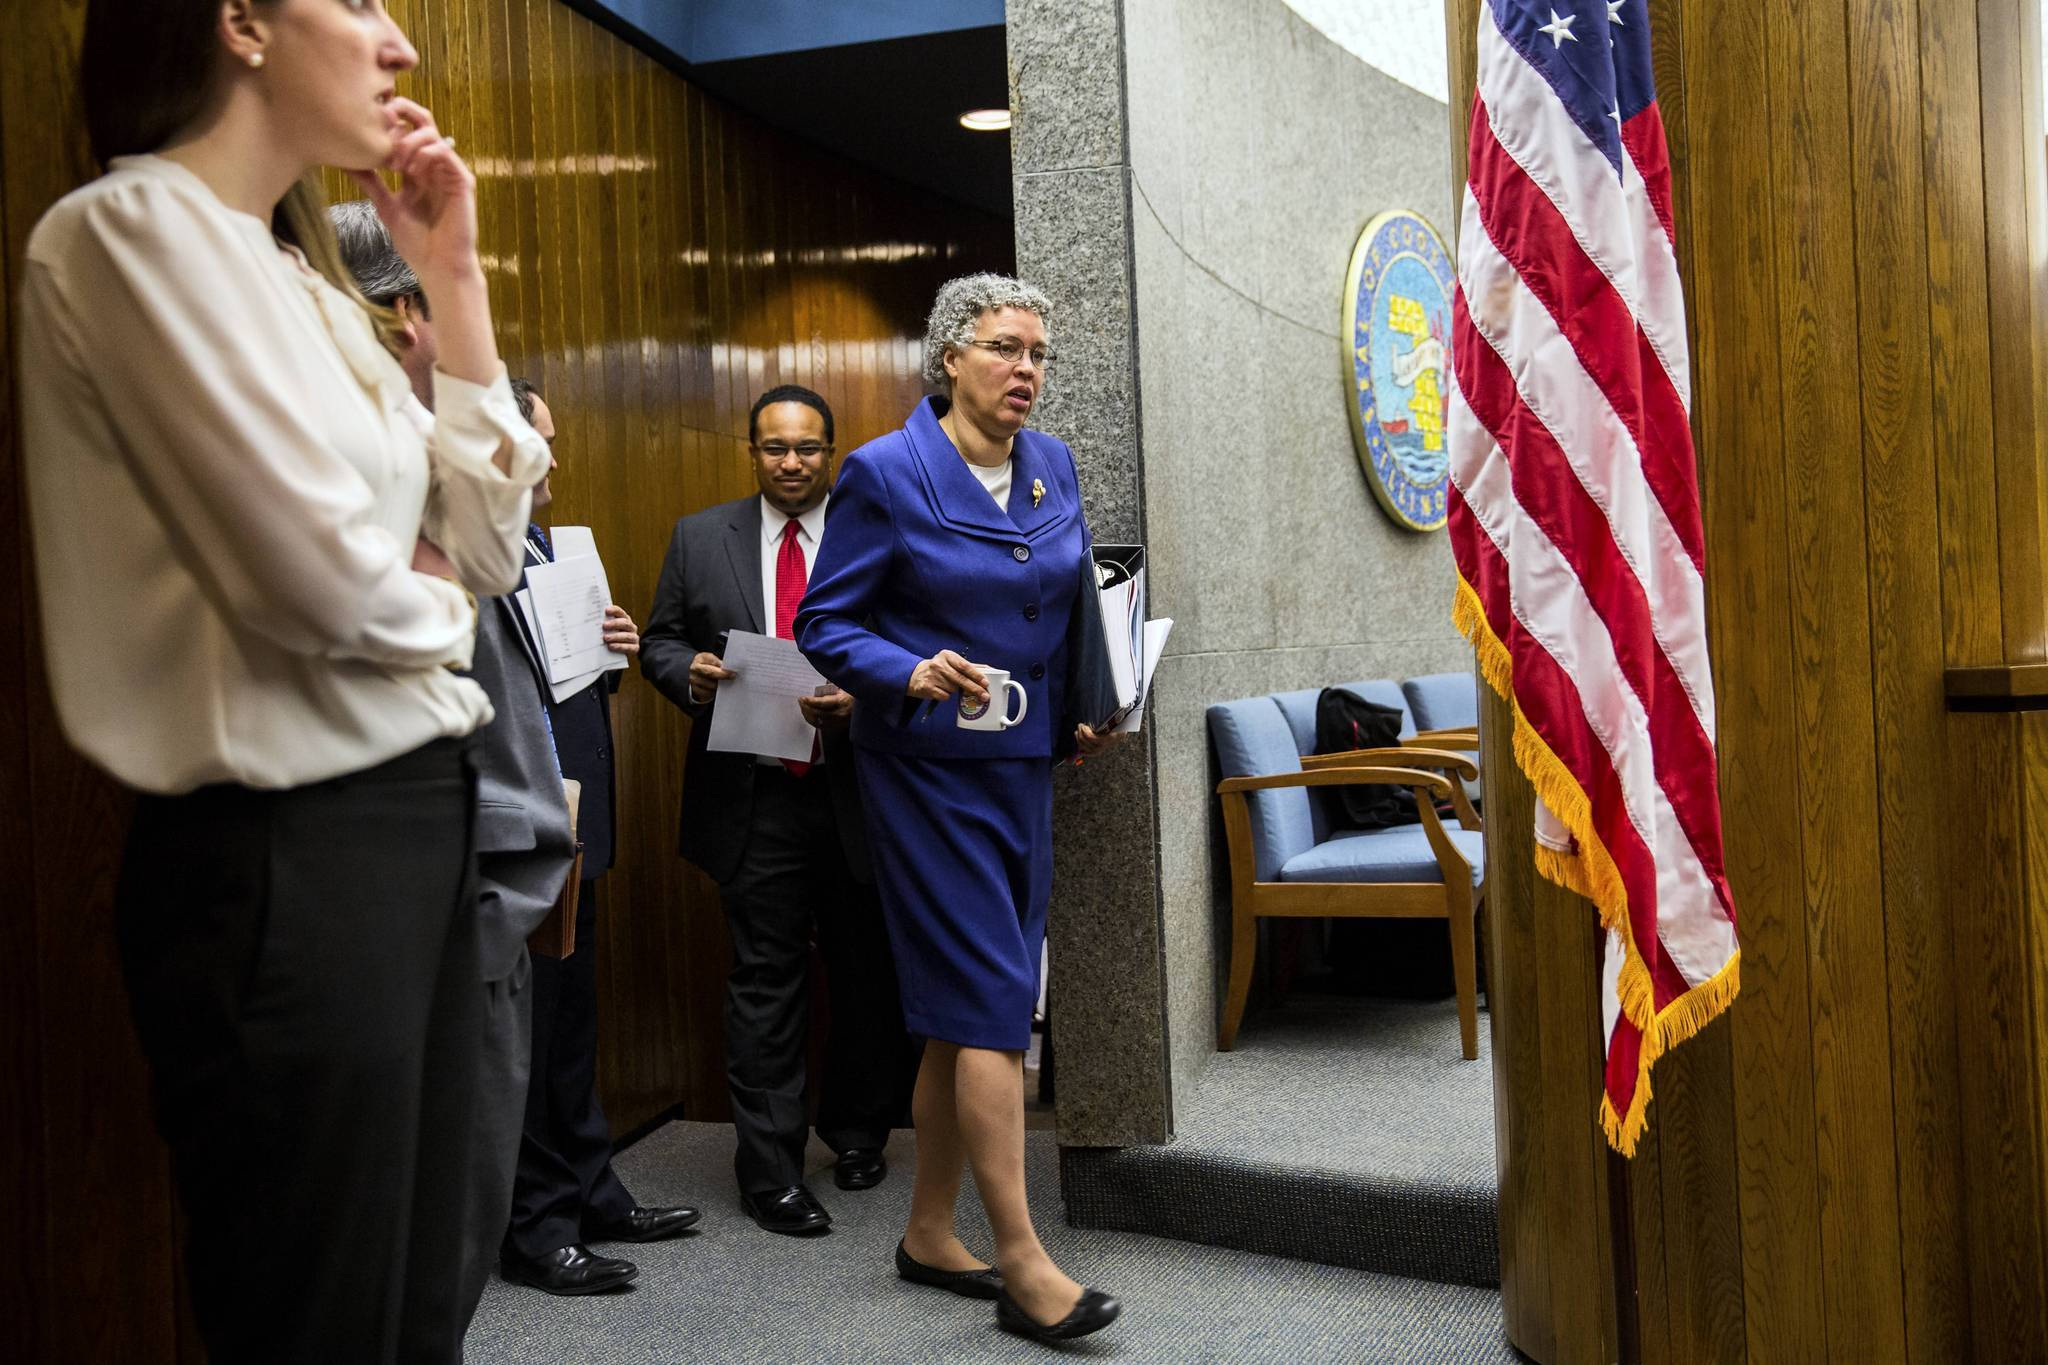 President Toni Preckwinkle arrives for the Cook County Board meeting in Chicago on Wednesday.